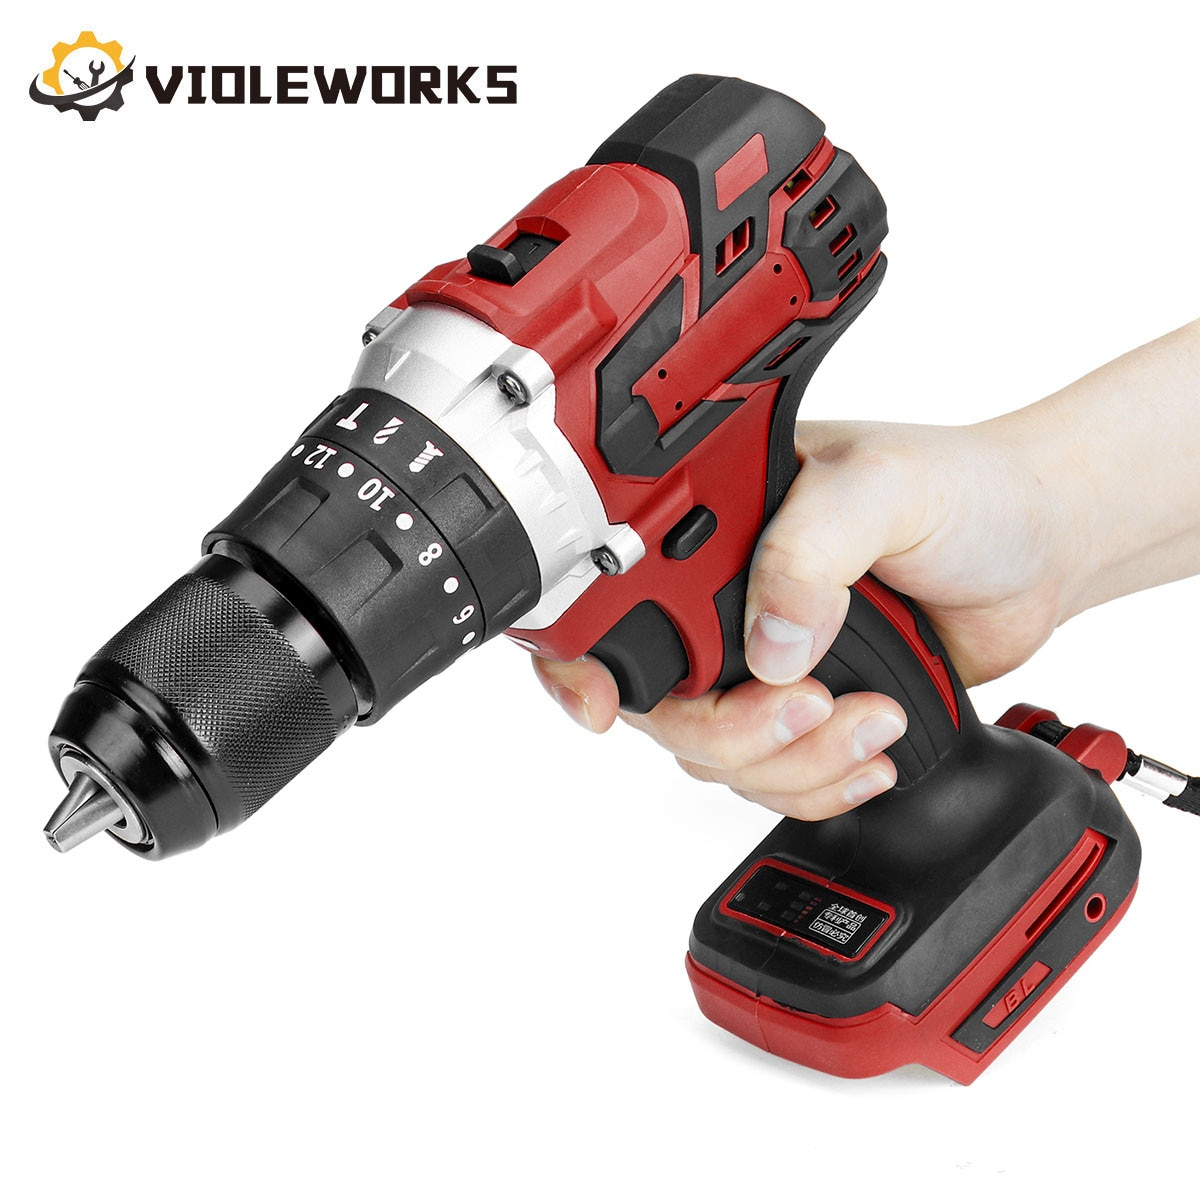 Brushless Electric Screwdriver Drill 3 In 1 20+3 Torque 13mm Cordless Impact Drill Hammer with LED Light for Makita 18V Battery 3 in 1 13mm brushless electric hammer drill electric screwdriver 20 3 torque cordless impact drill for makita 18v battery